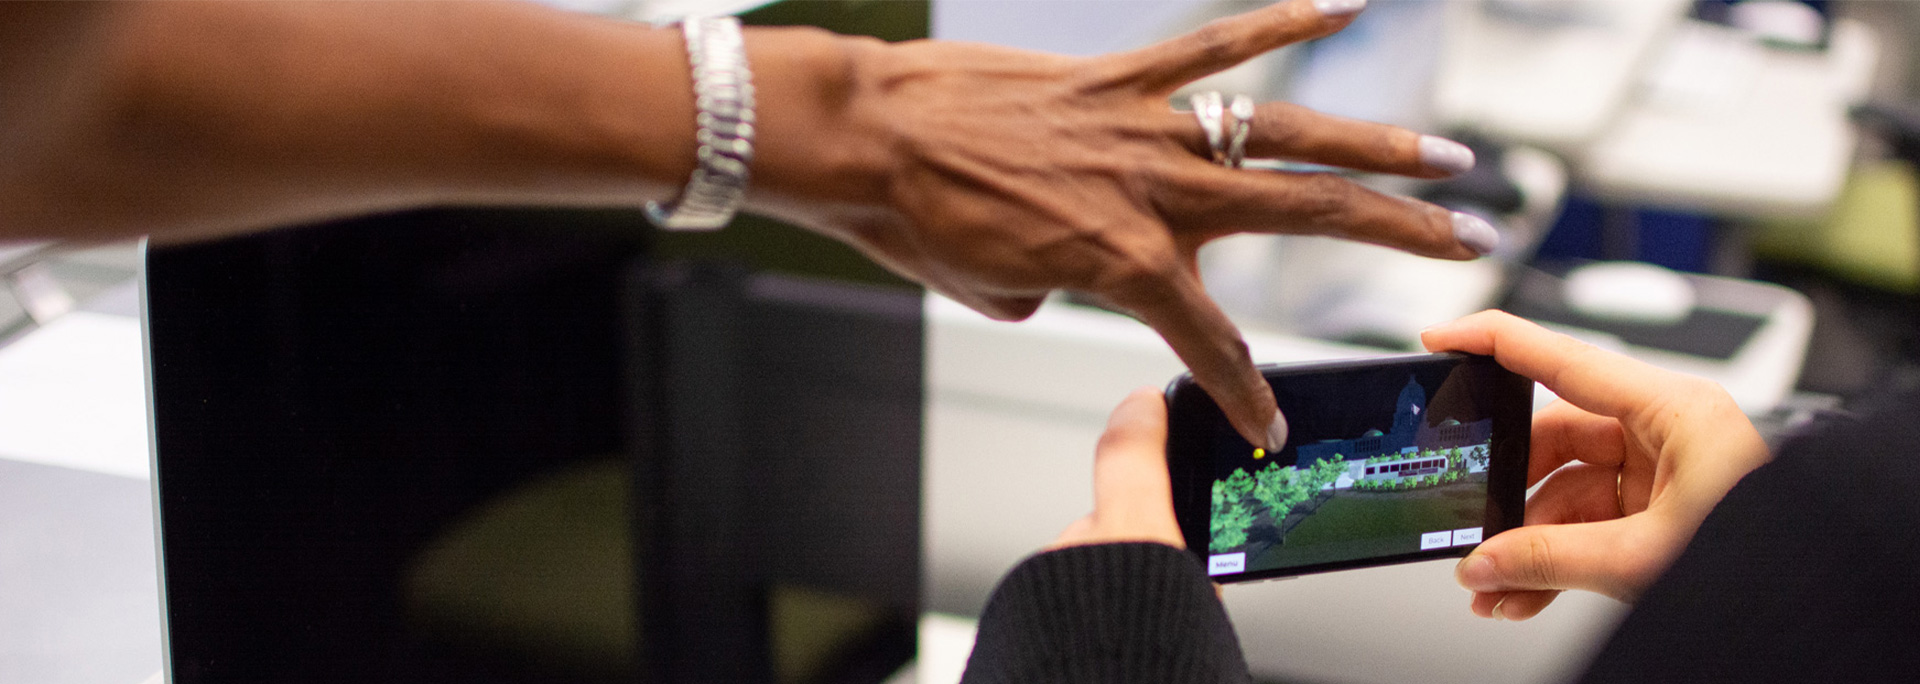 A student holds their hone while the instructor points to the screen.